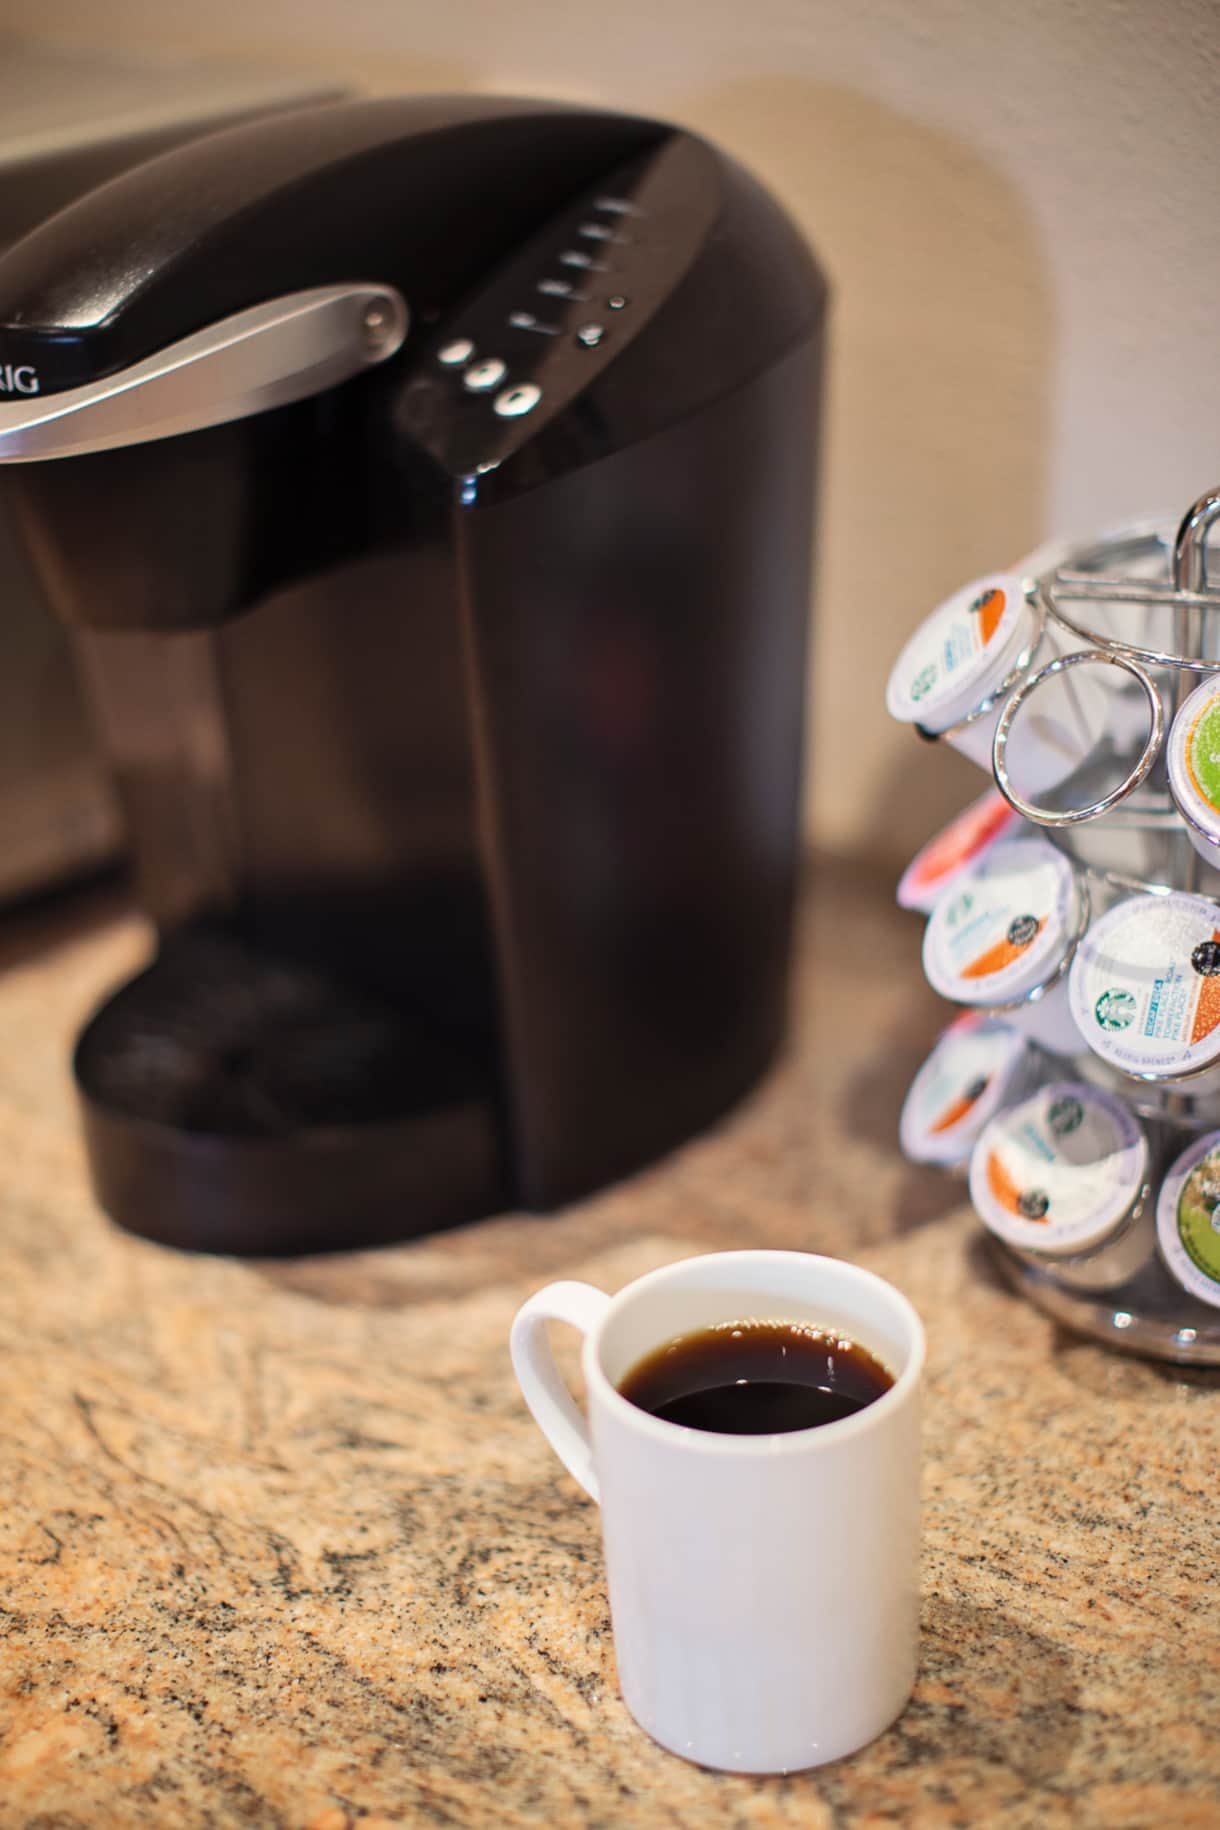 Keurig, Mr. Coffee, Nespresso, French Press.... lots of options!